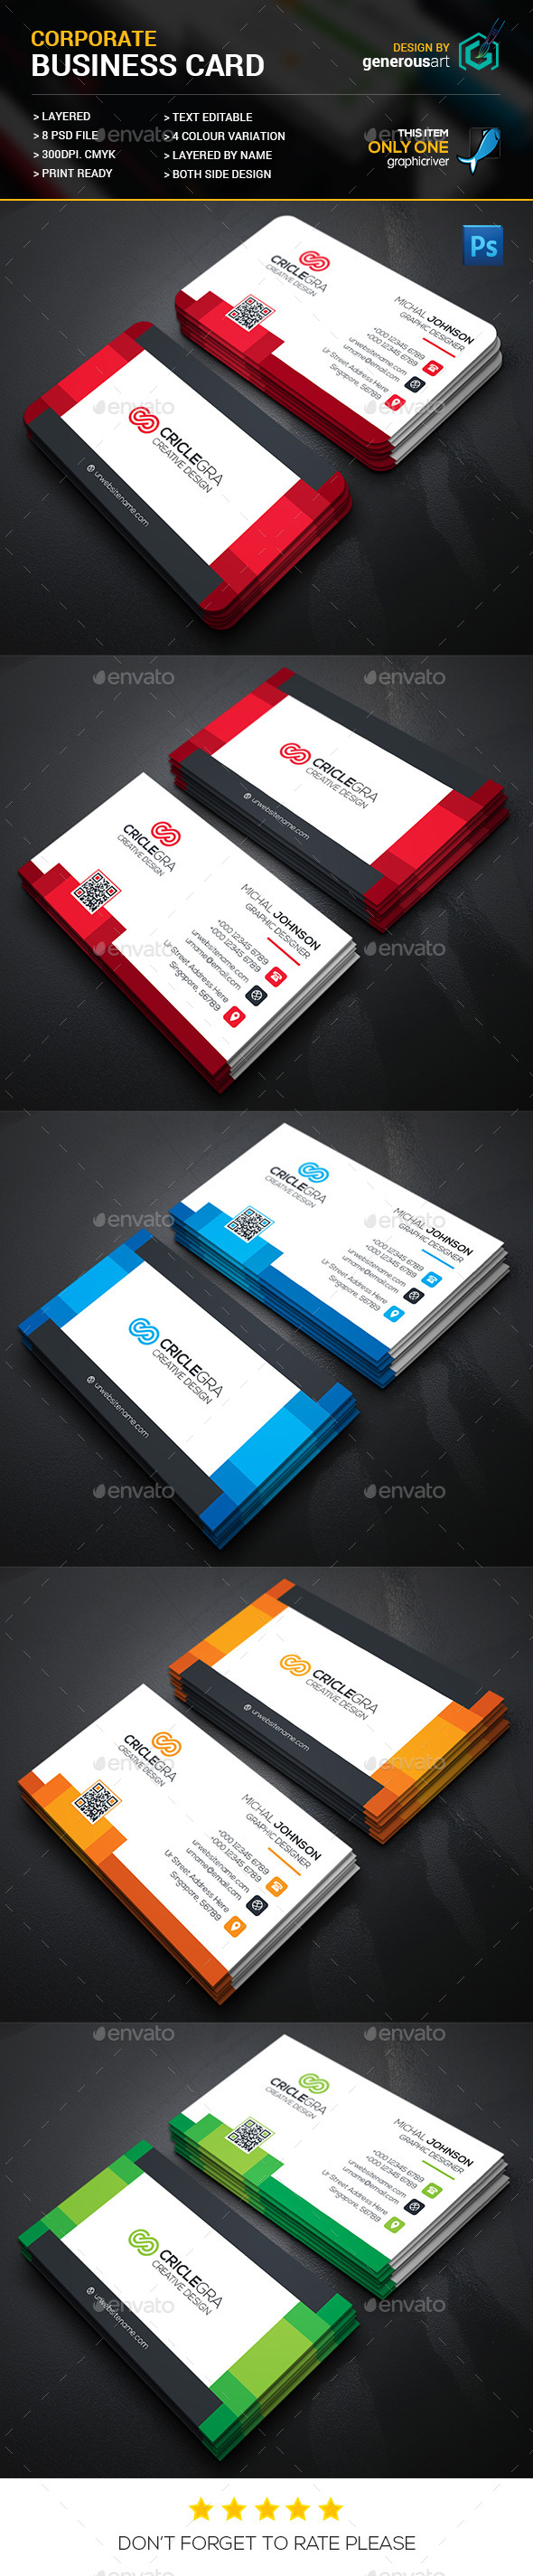 Corporate Business Card by generousart | GraphicRiver